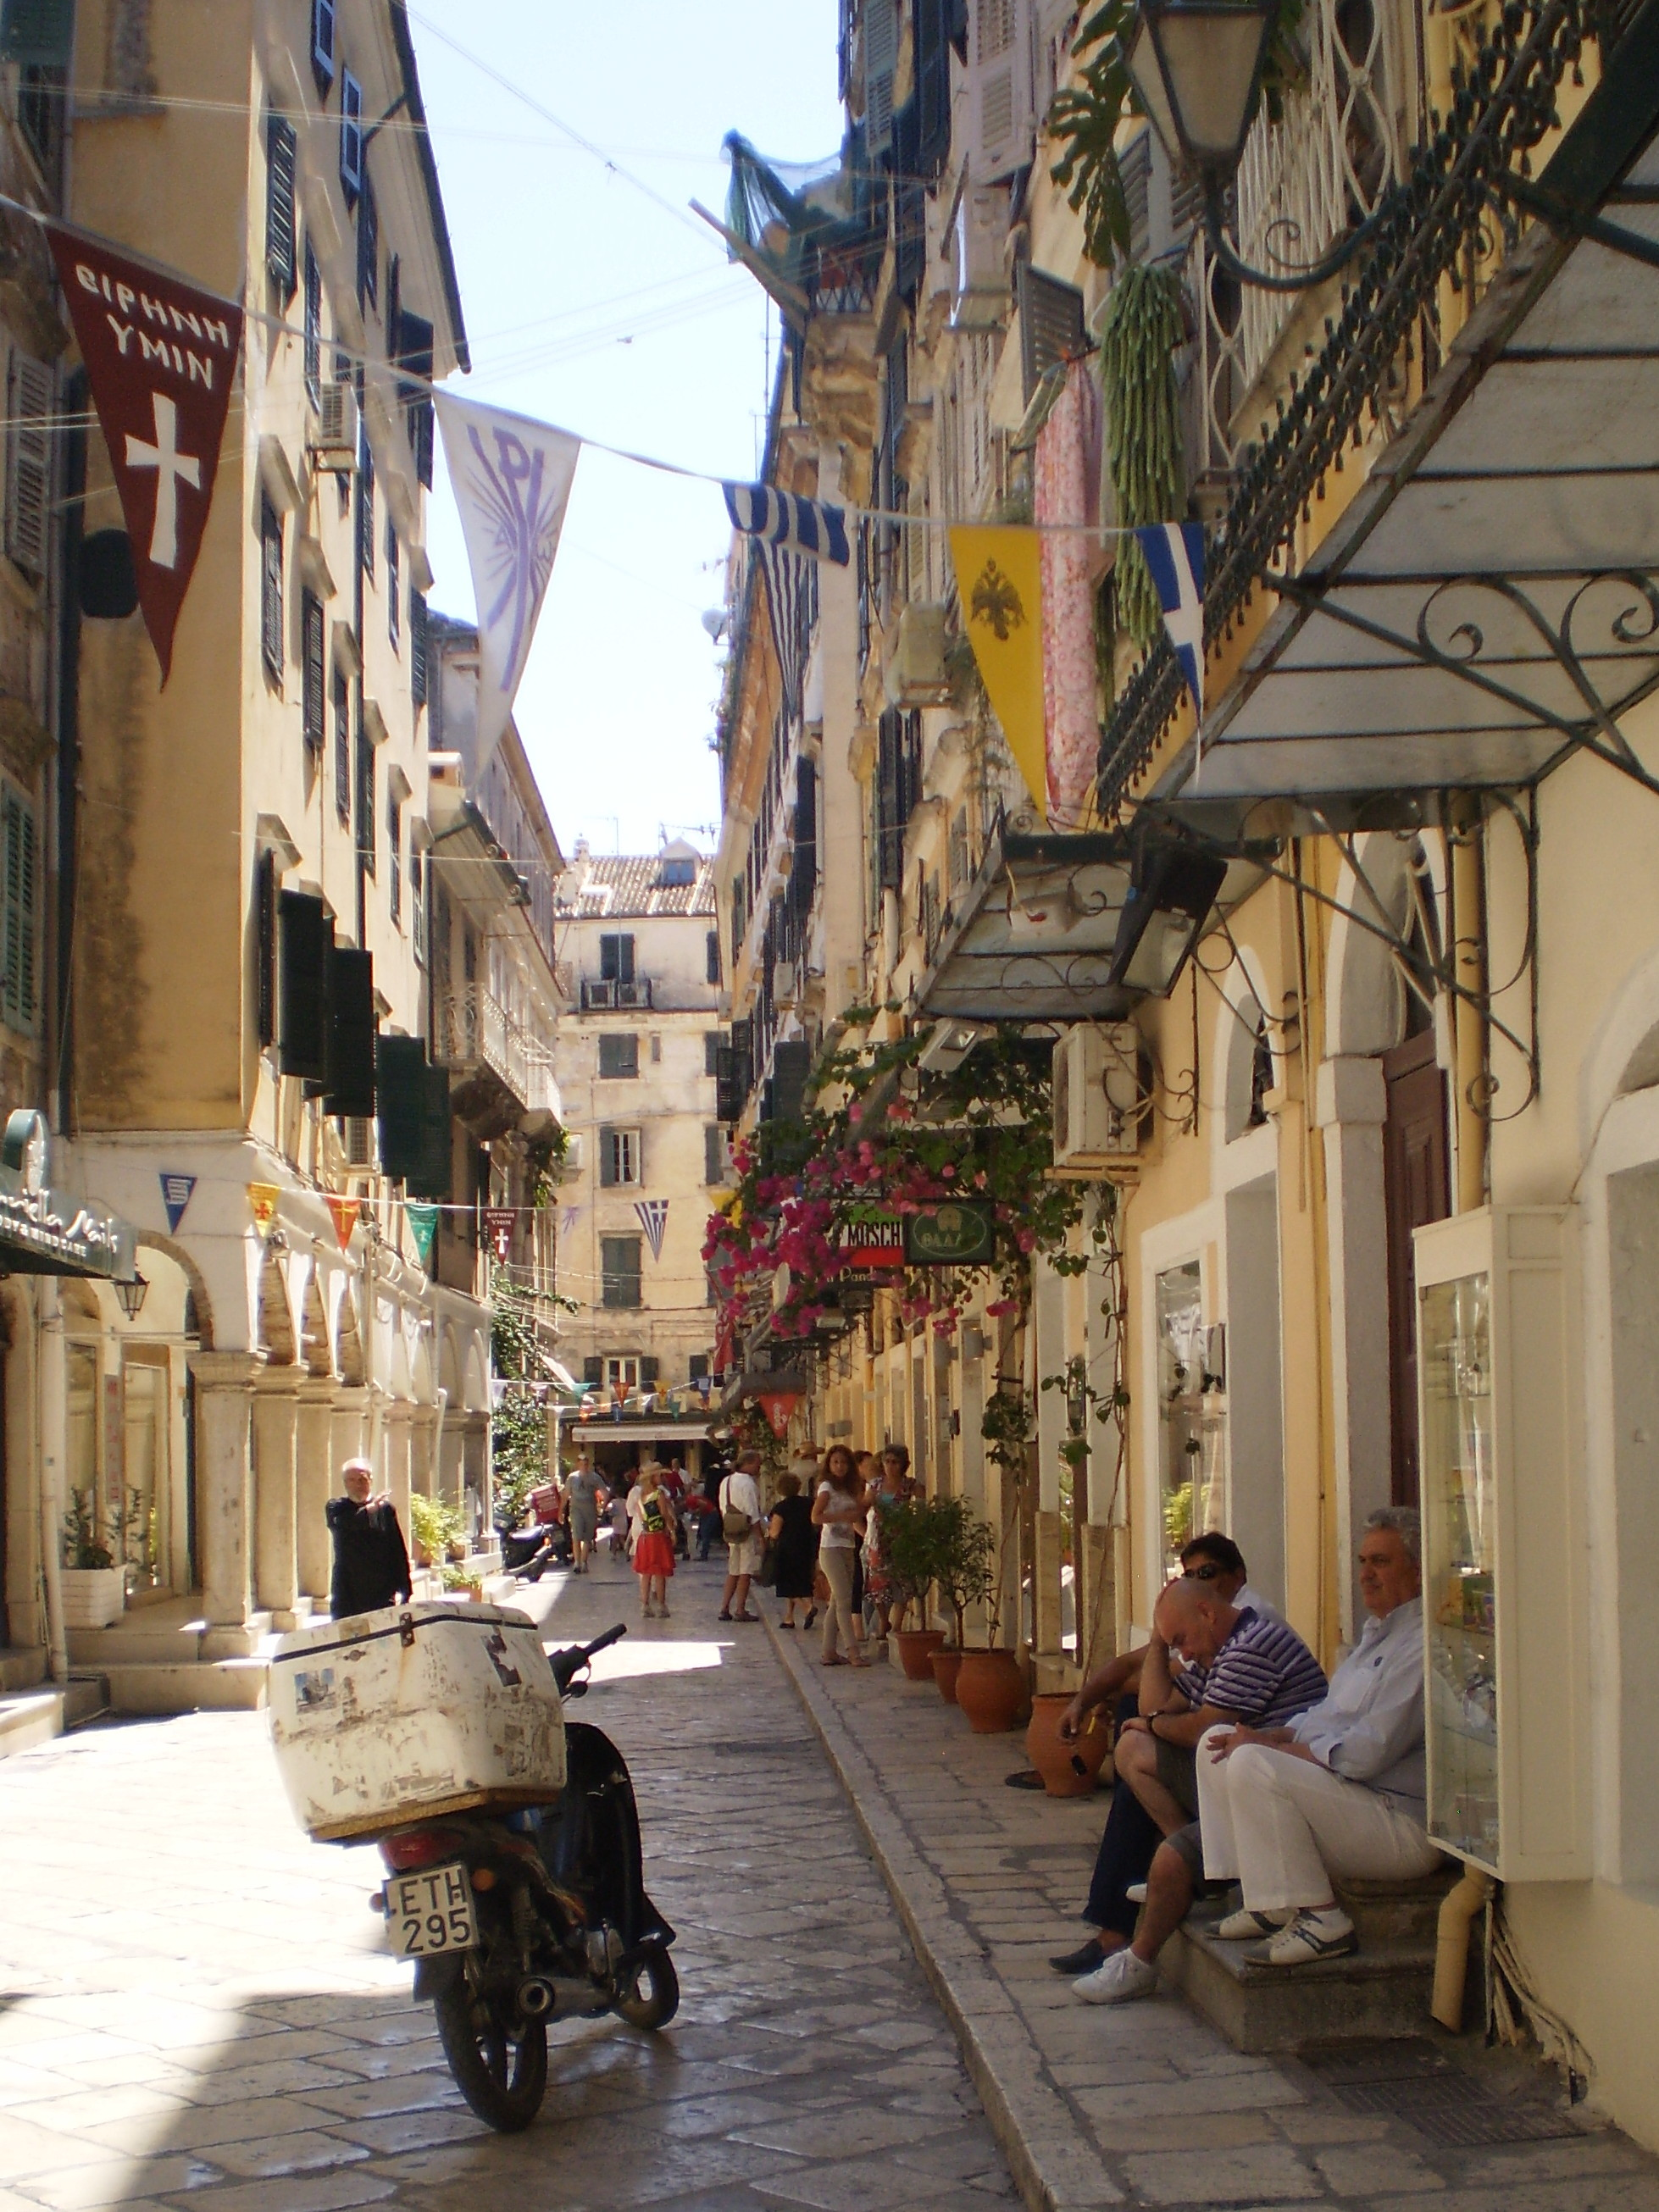 Corfu old town | Let the great wheel spin